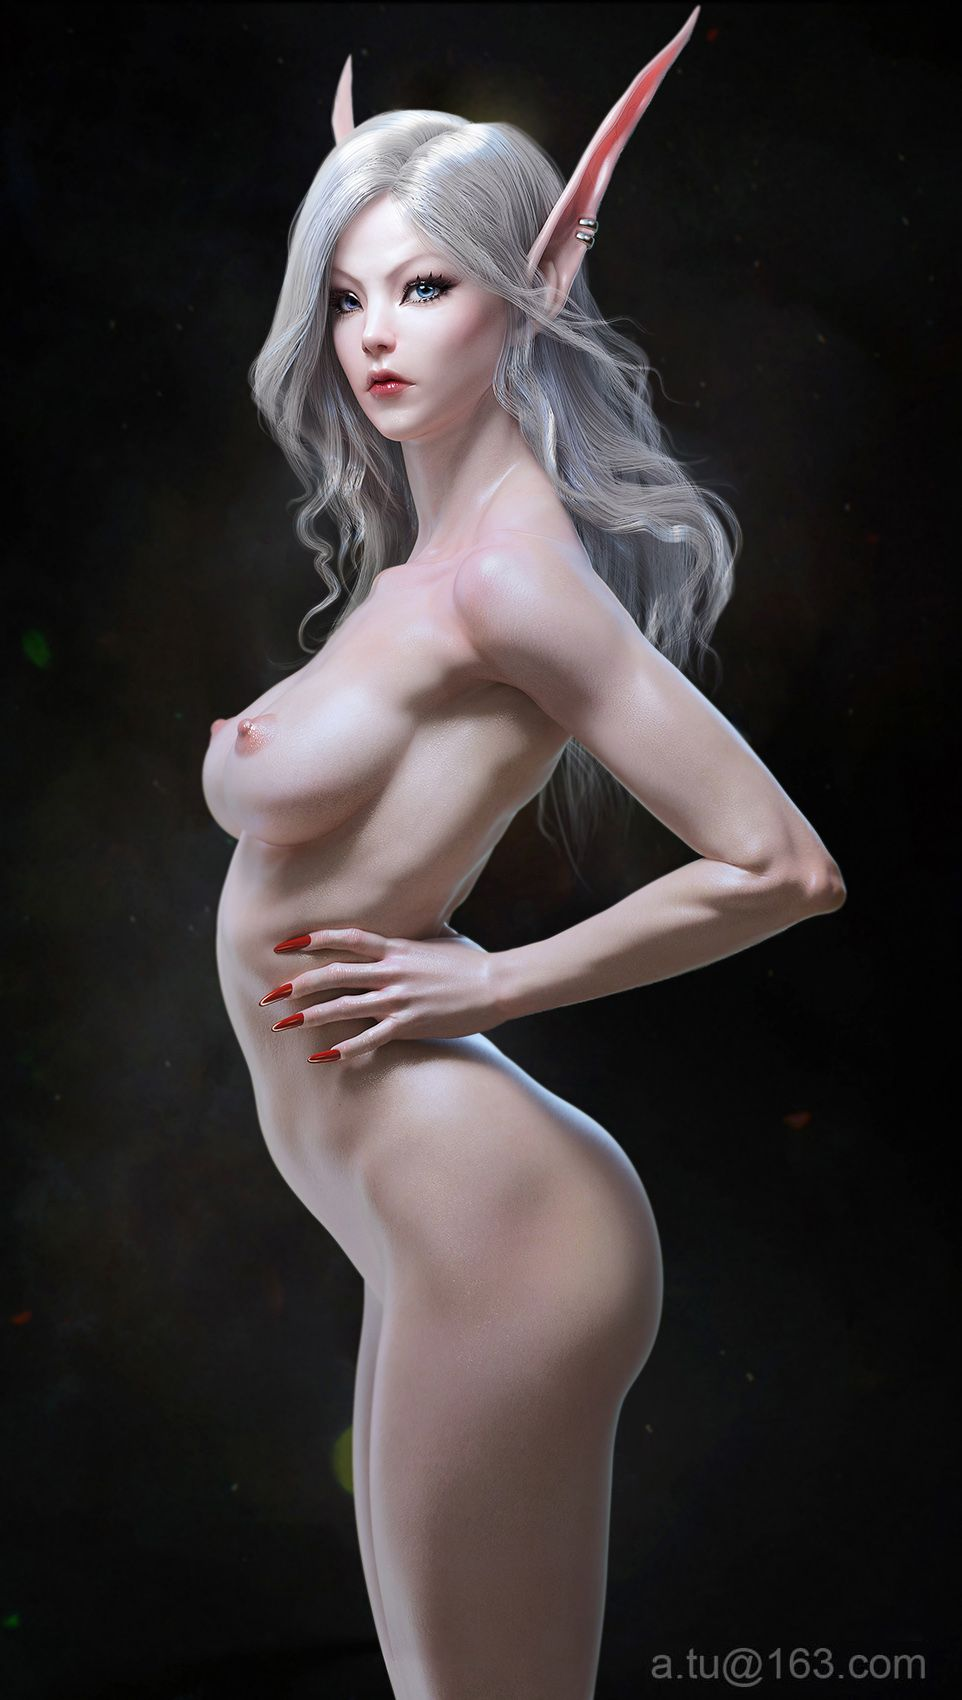 Interesting Nude elf fantasy art